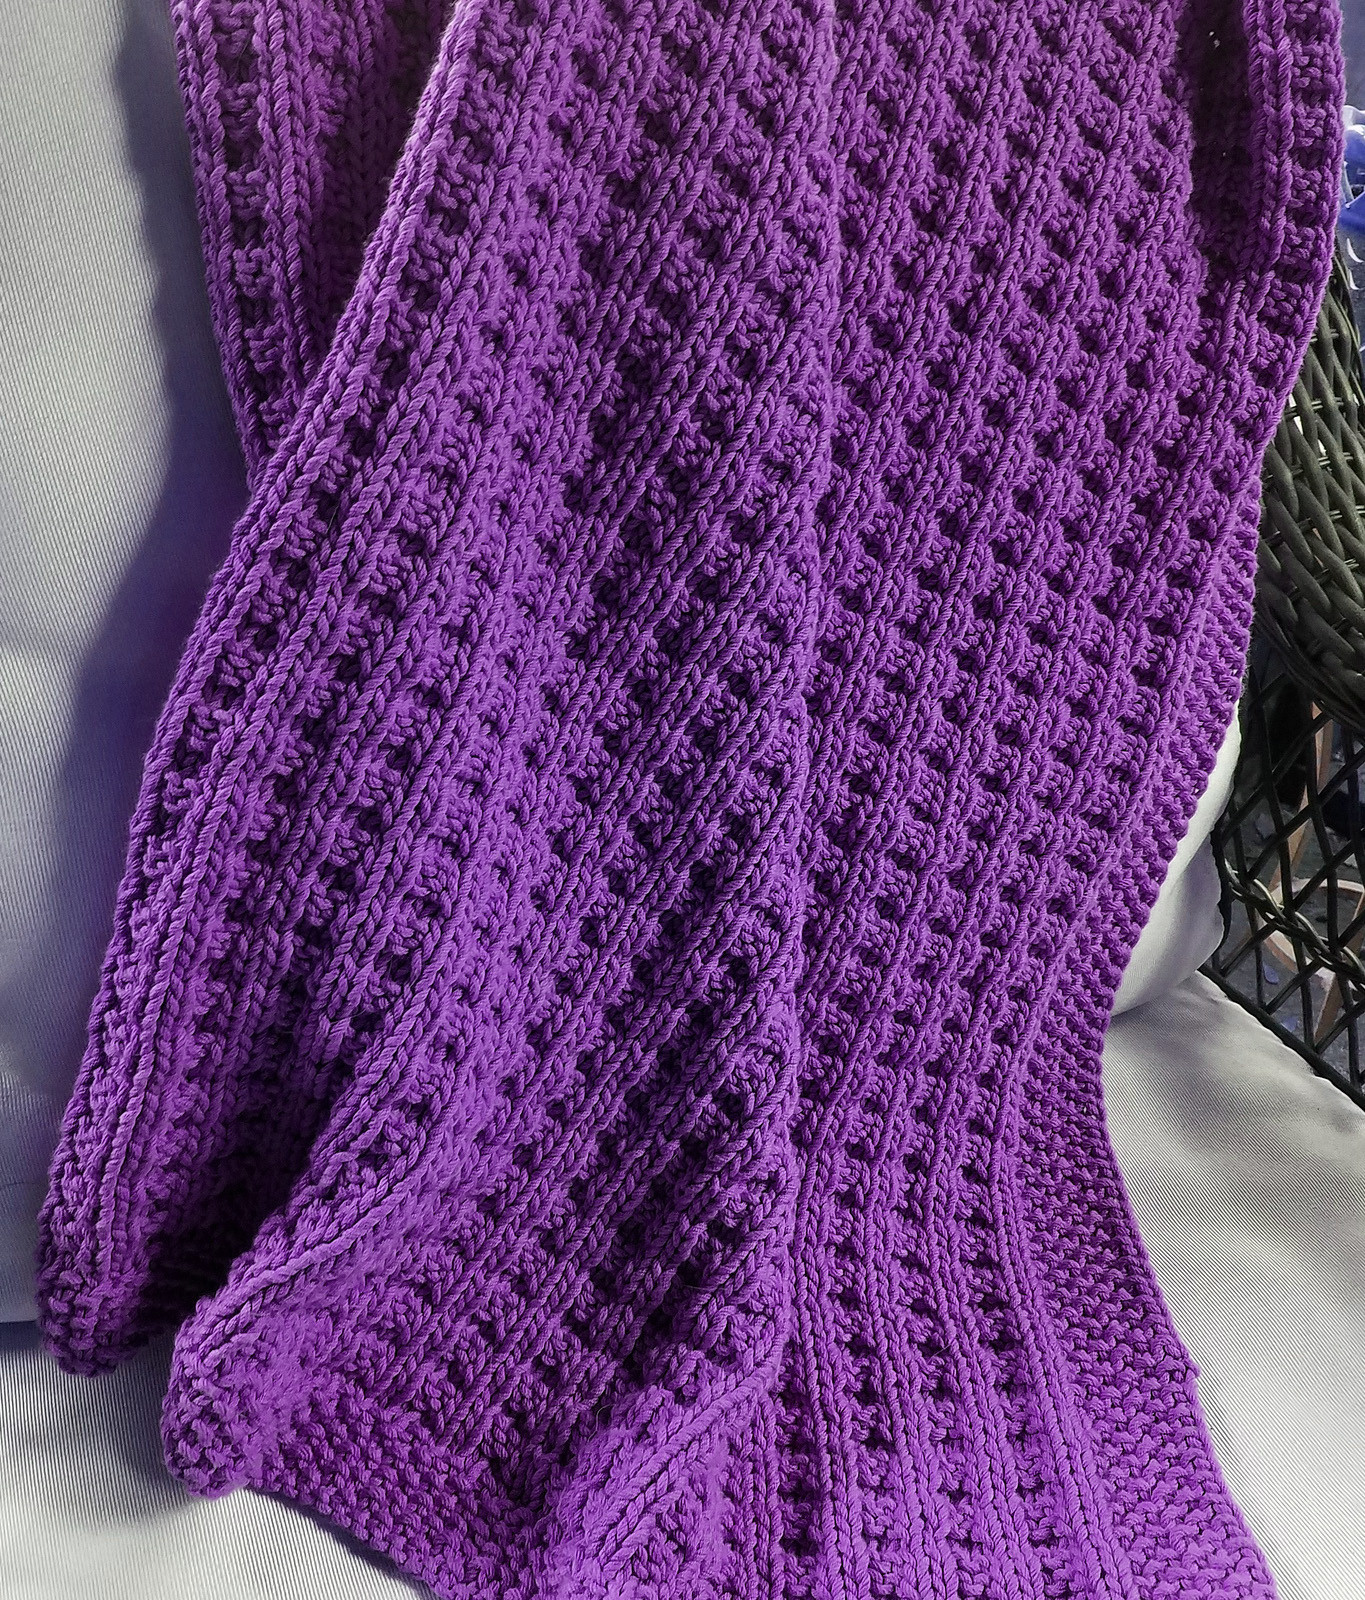 Free Baby Blanket Knitting Patterns Awesome Quick Baby Blanket Knitting Patterns Of Delightful 45 Photos Free Baby Blanket Knitting Patterns